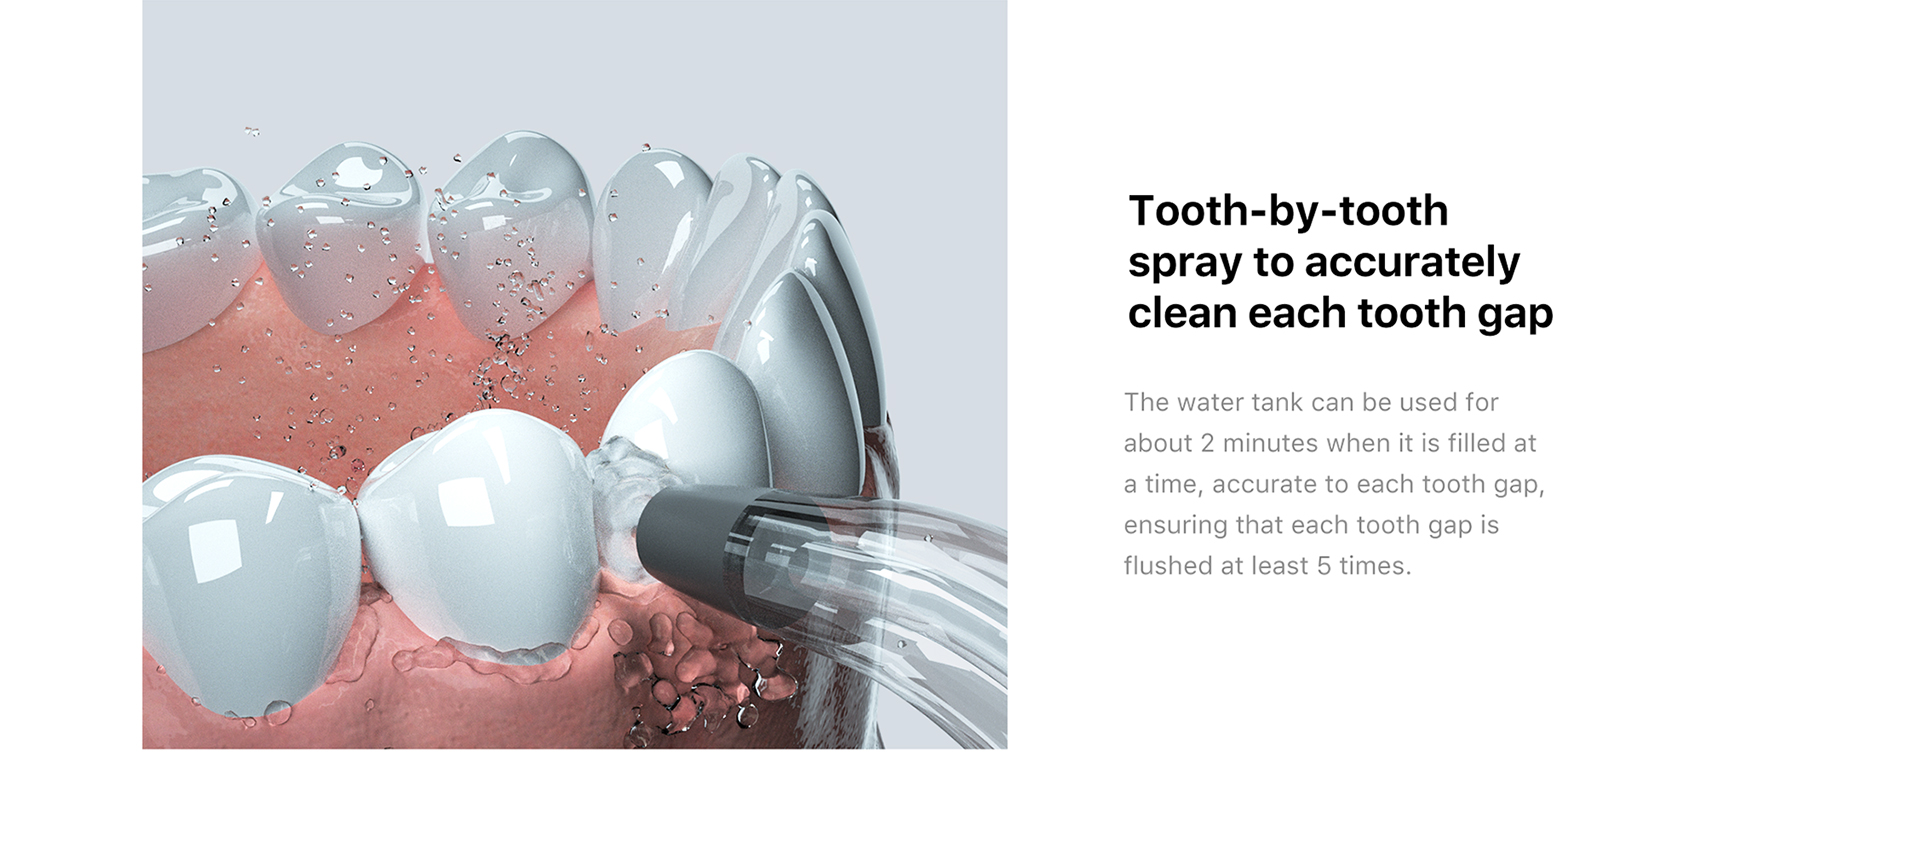 tooth-by -tooth spray to accurately clean each tooth gap